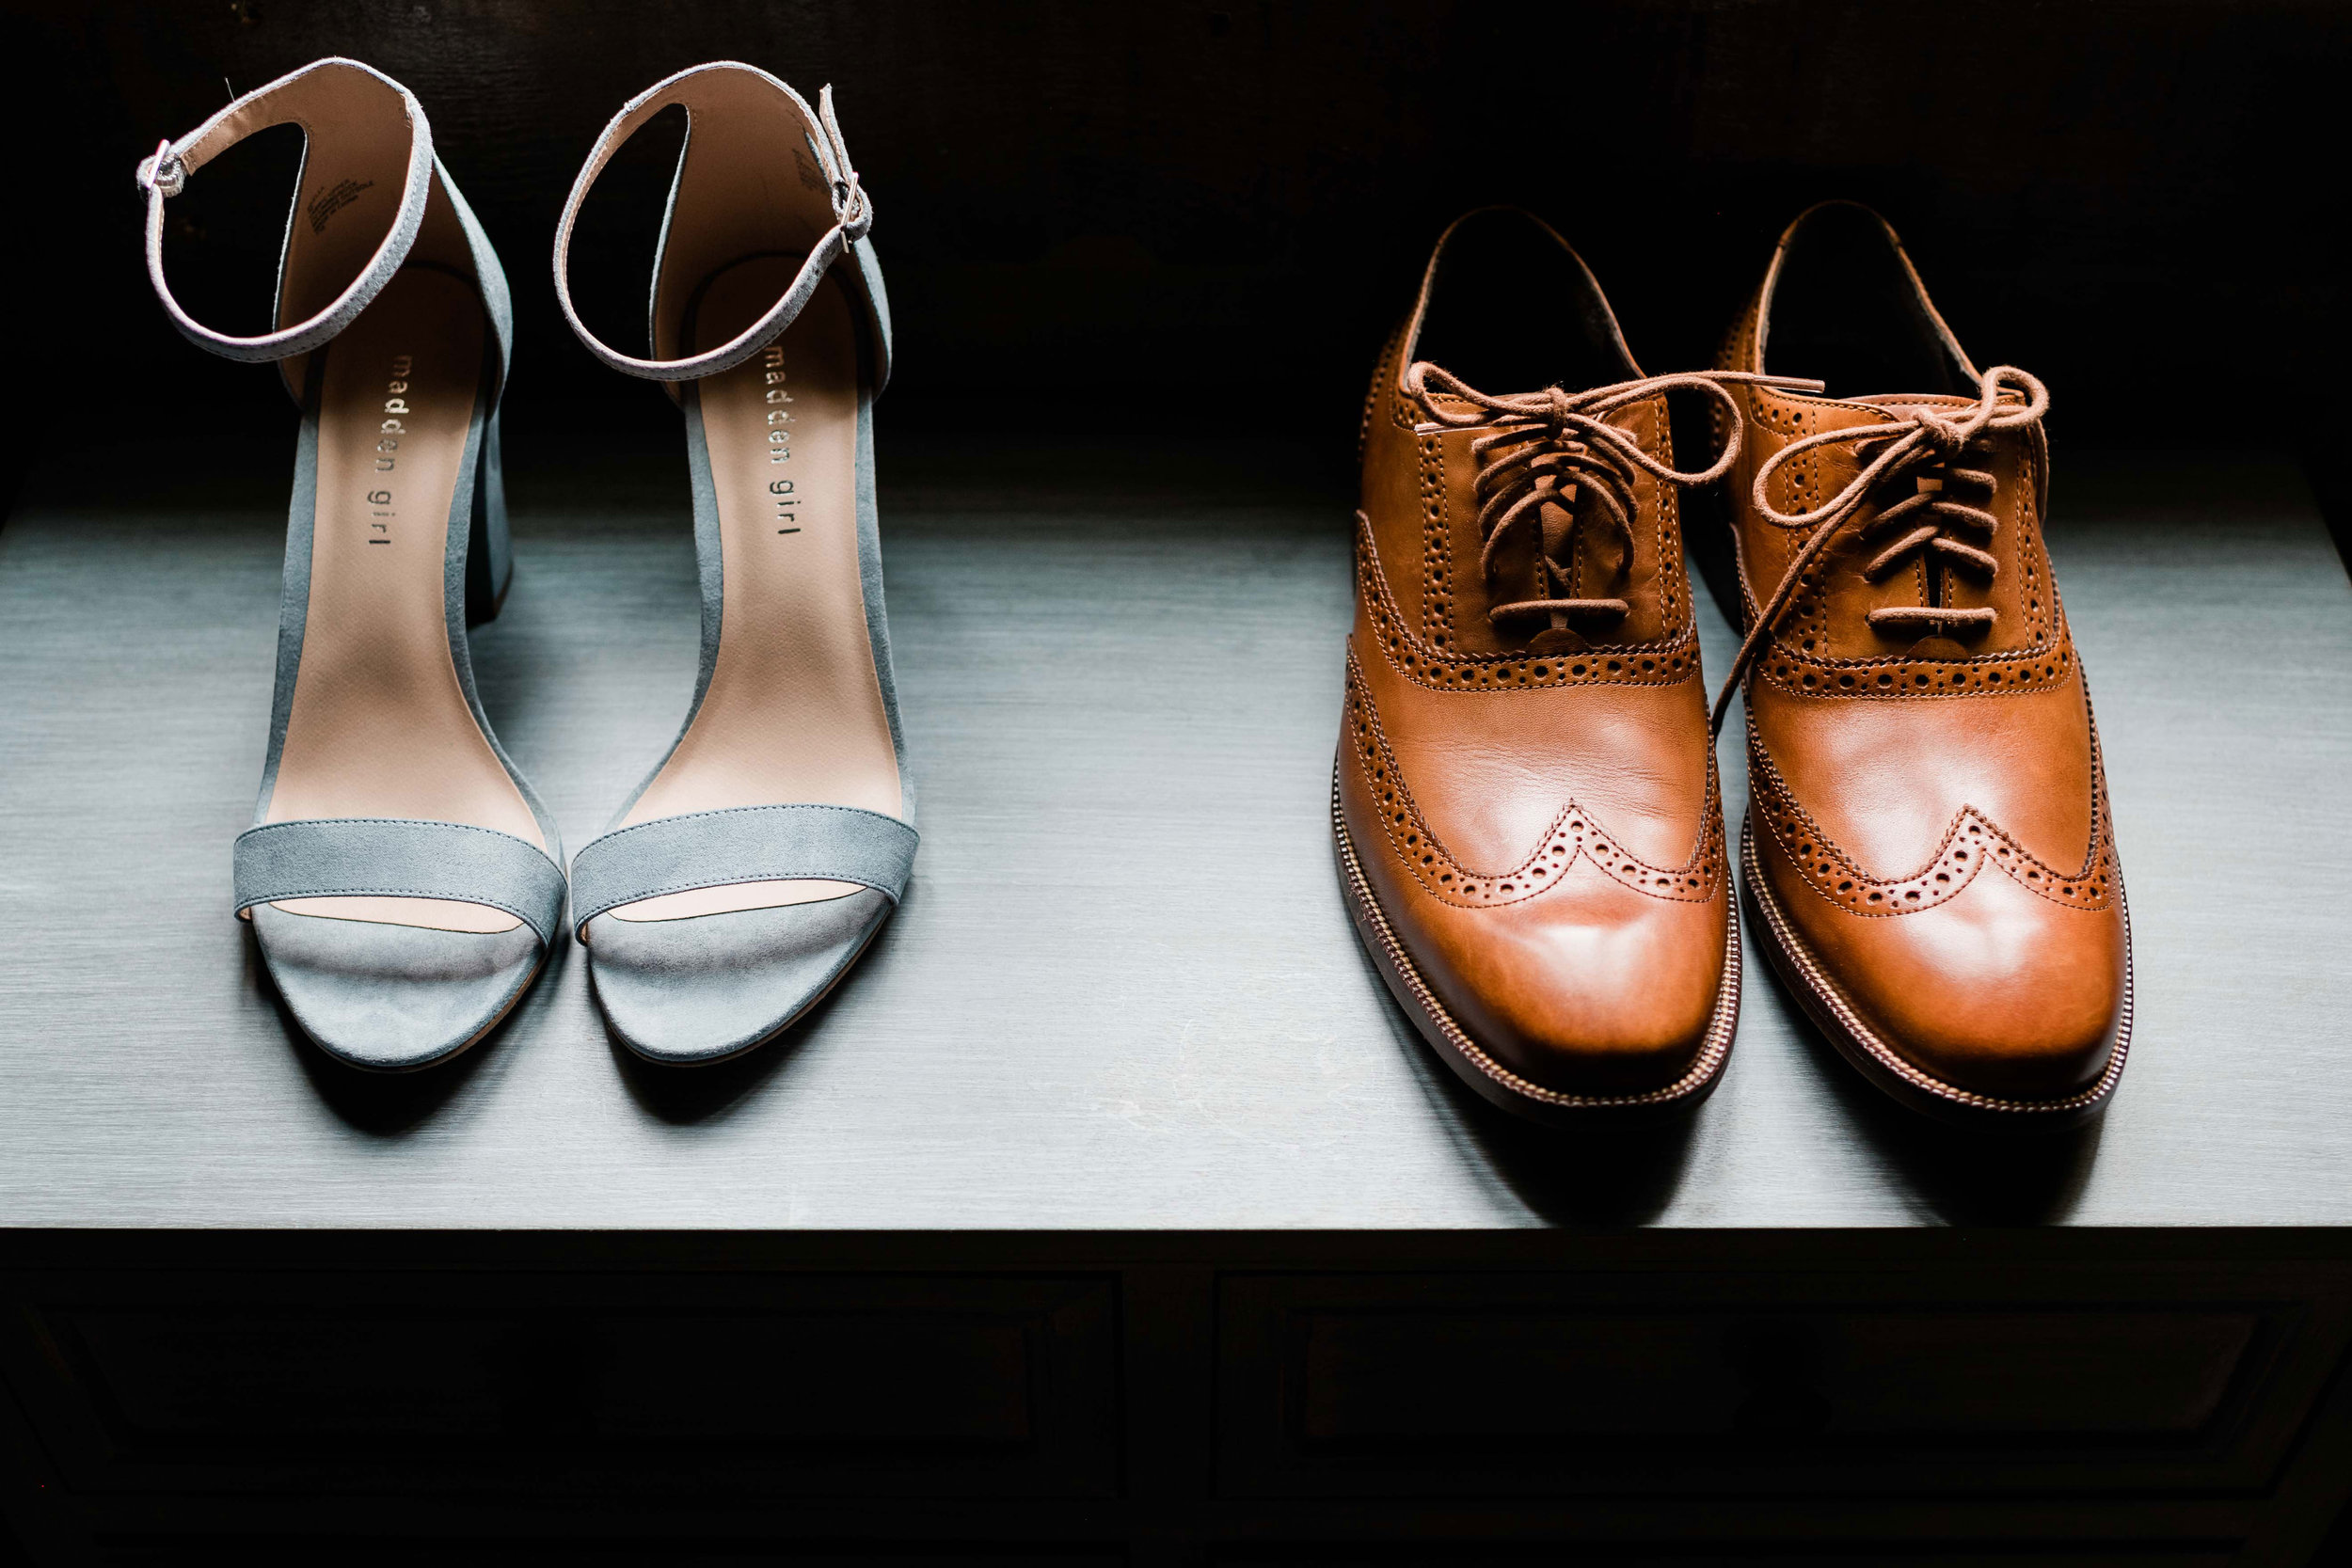 Bride and groom shoes on dresser